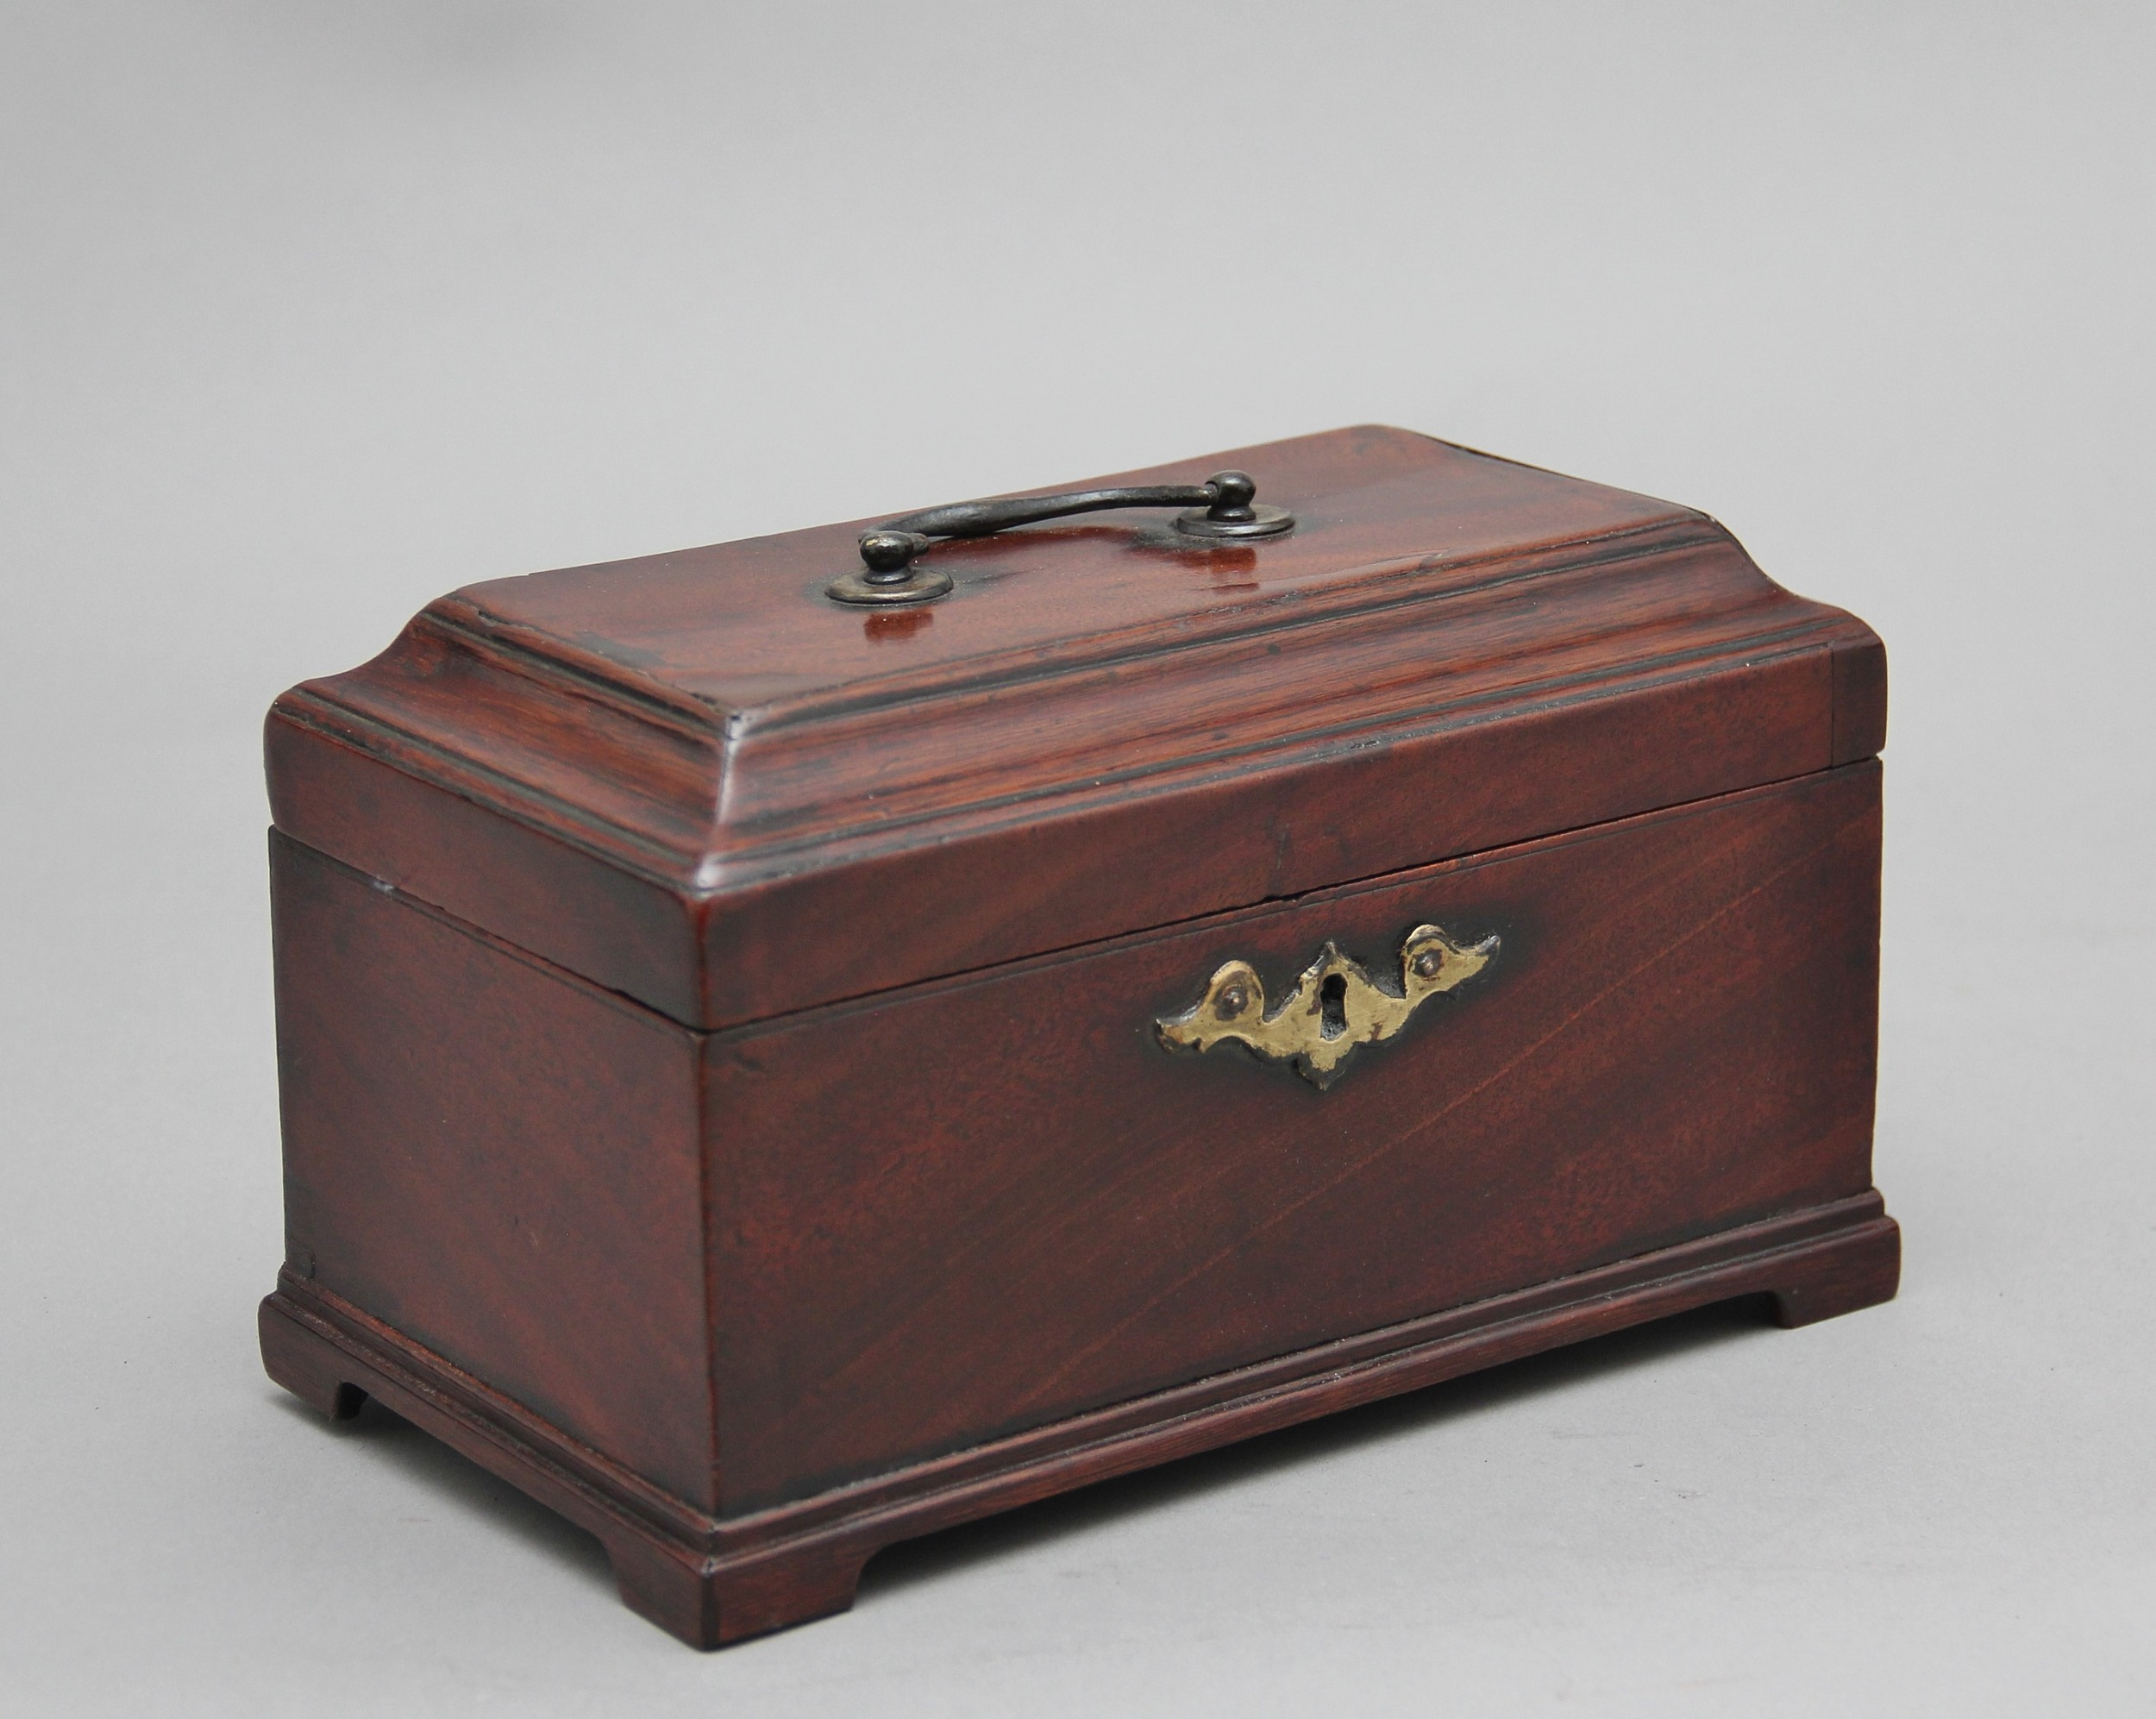 18th century mahogany tea caddy